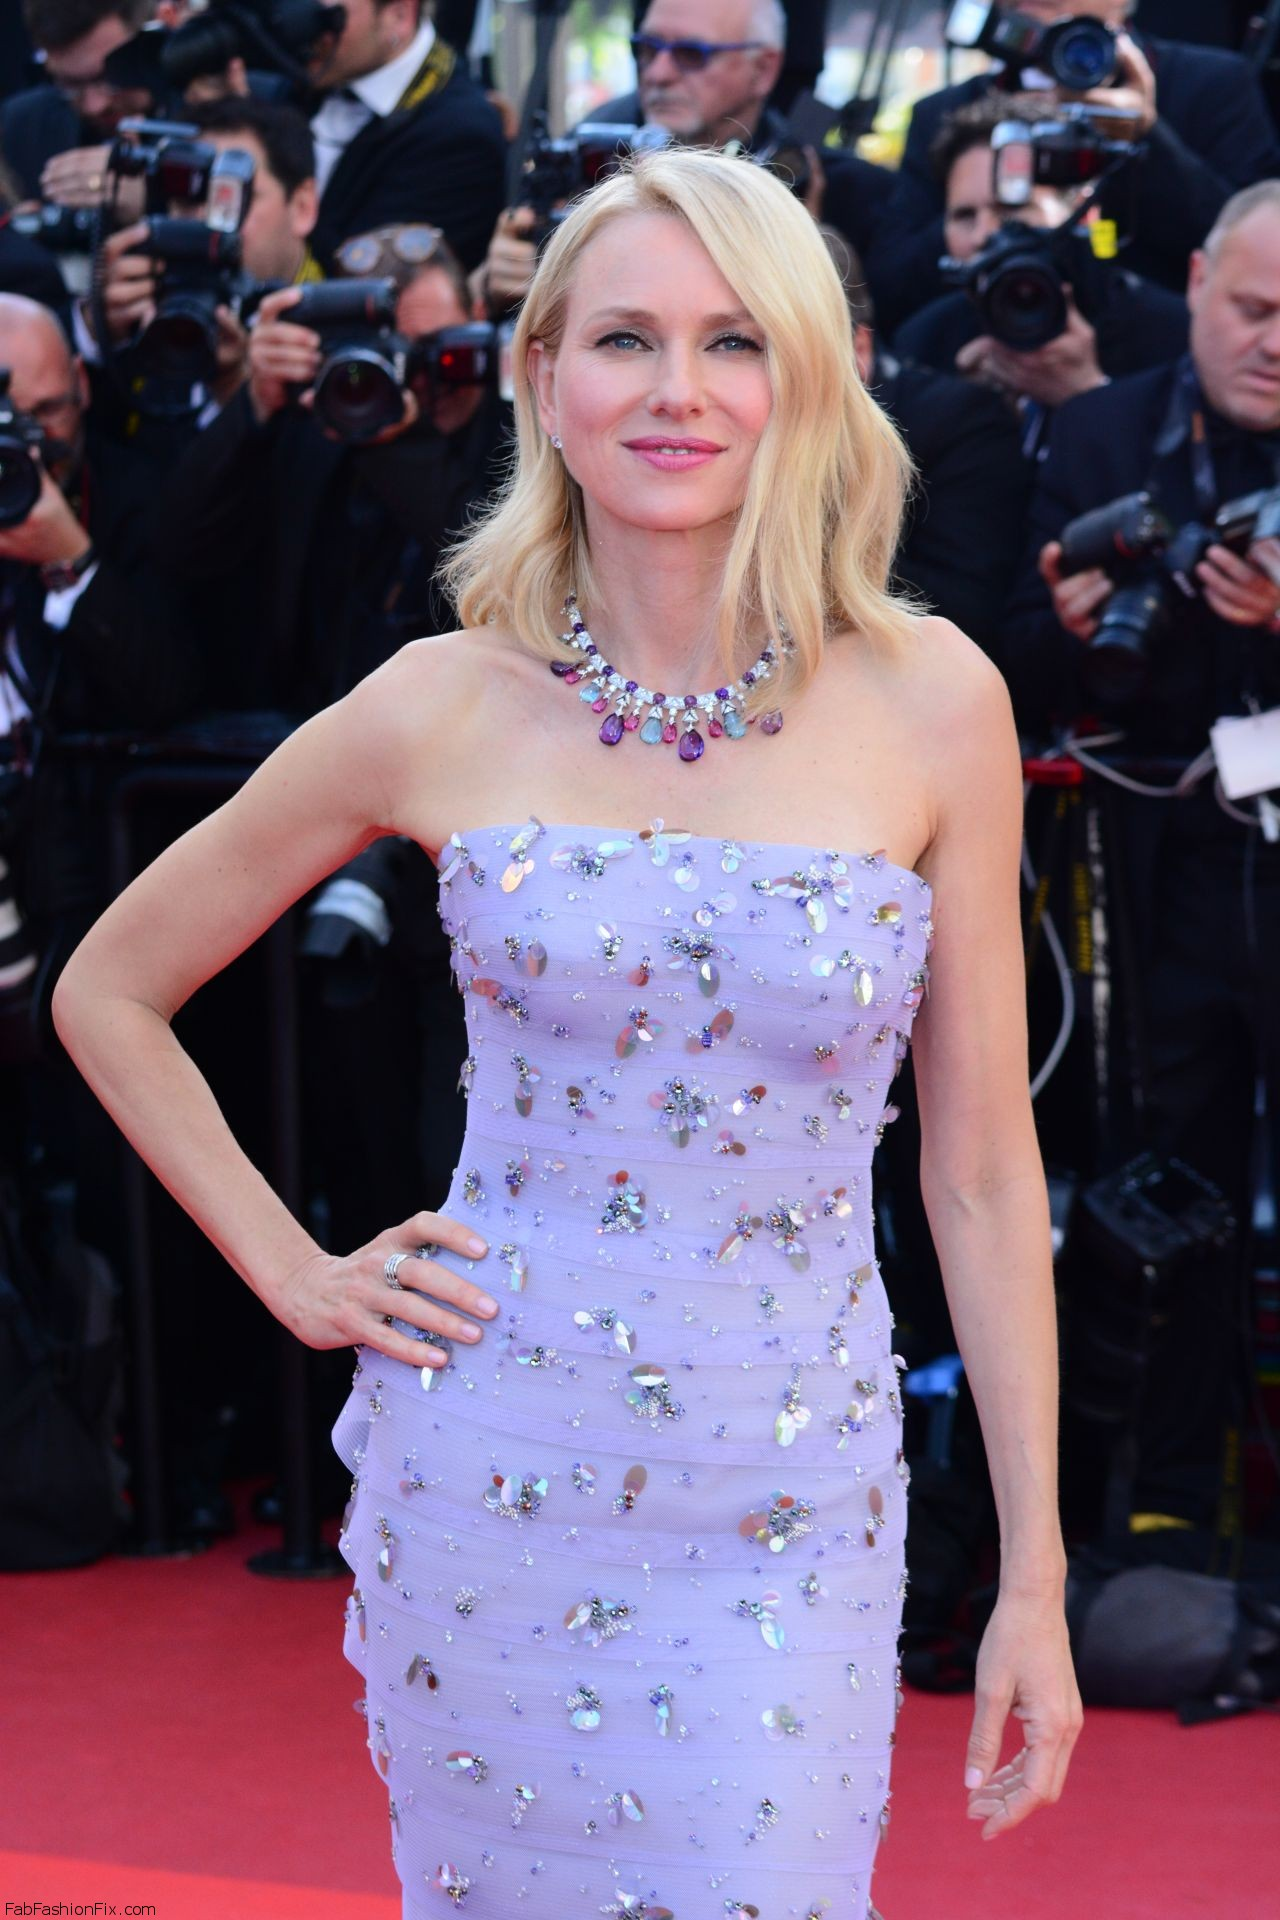 naomi-watts-cafe-society-premiere-and-the-opening-night-gala-2016-cannes-film-festival-1